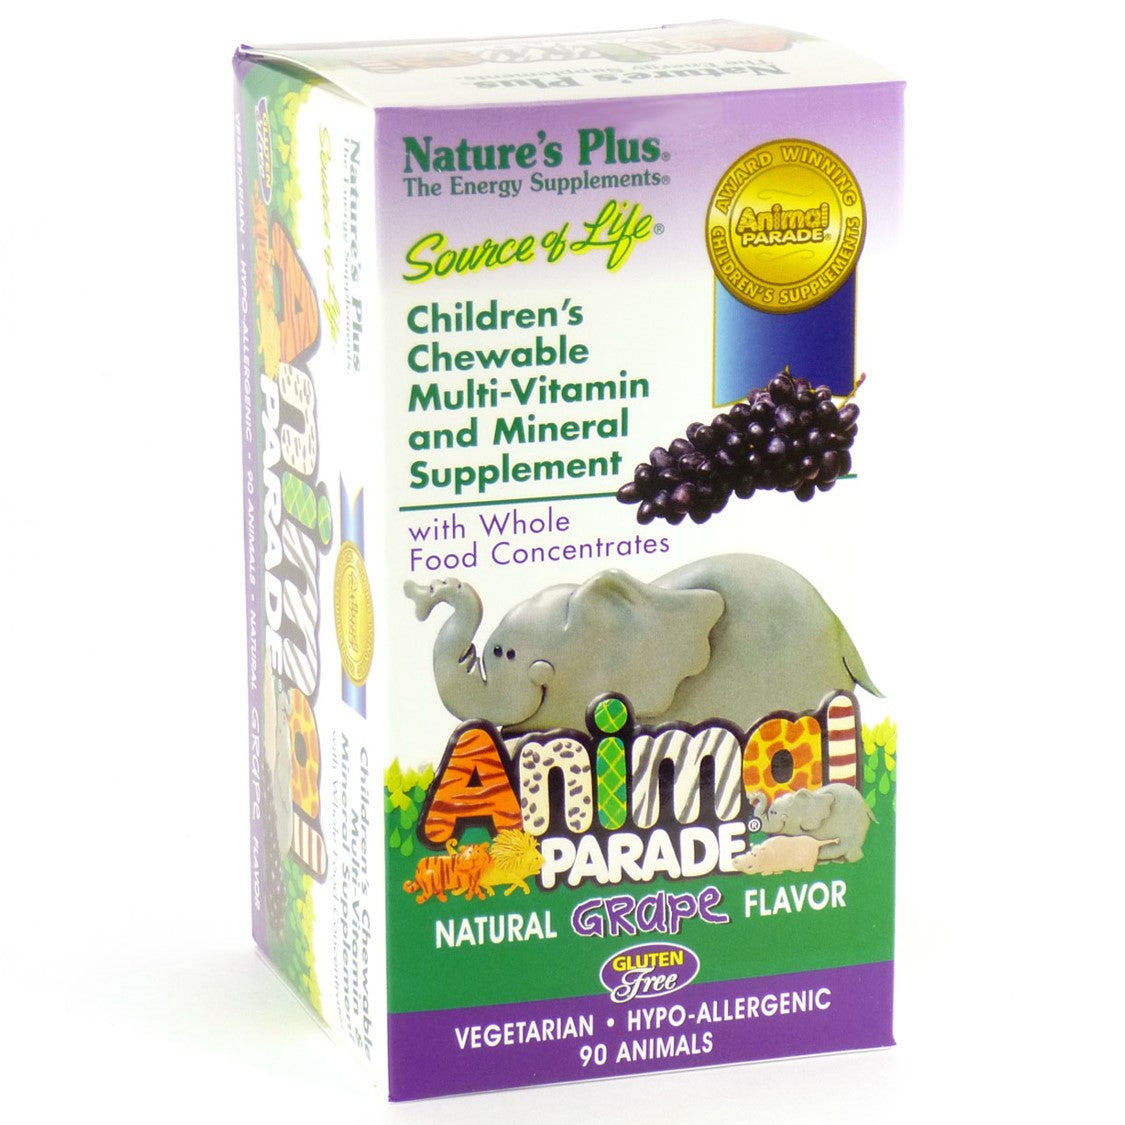 Natures Plus Source of Life Animal Parade Multi-Vitamin & Mineral (Grape), 90 tabs.